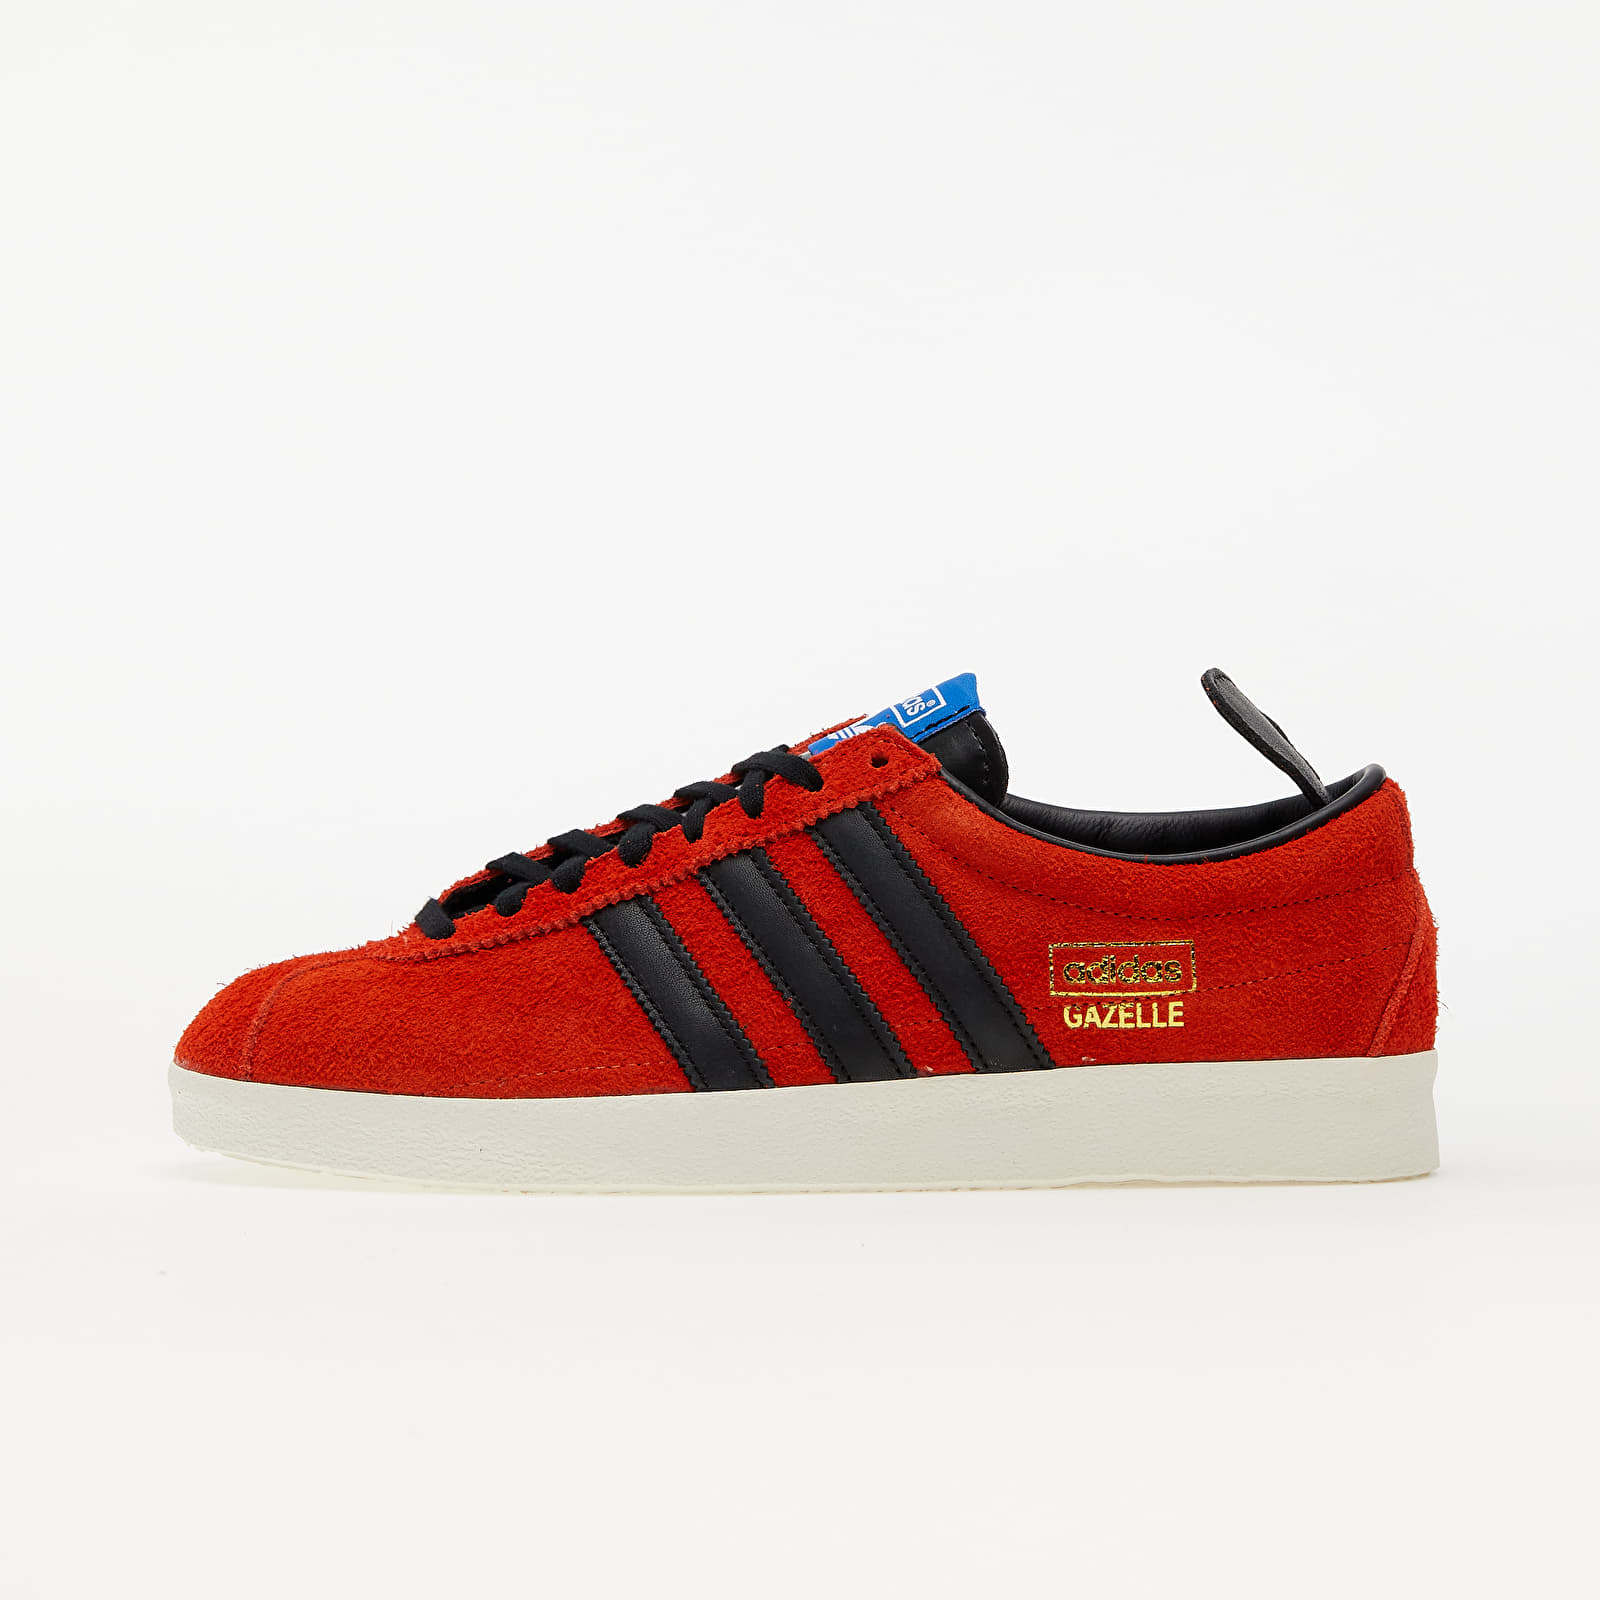 adidas Gazelle Vintage True Orange/ Core Black/ Blue EUR 47 1/3